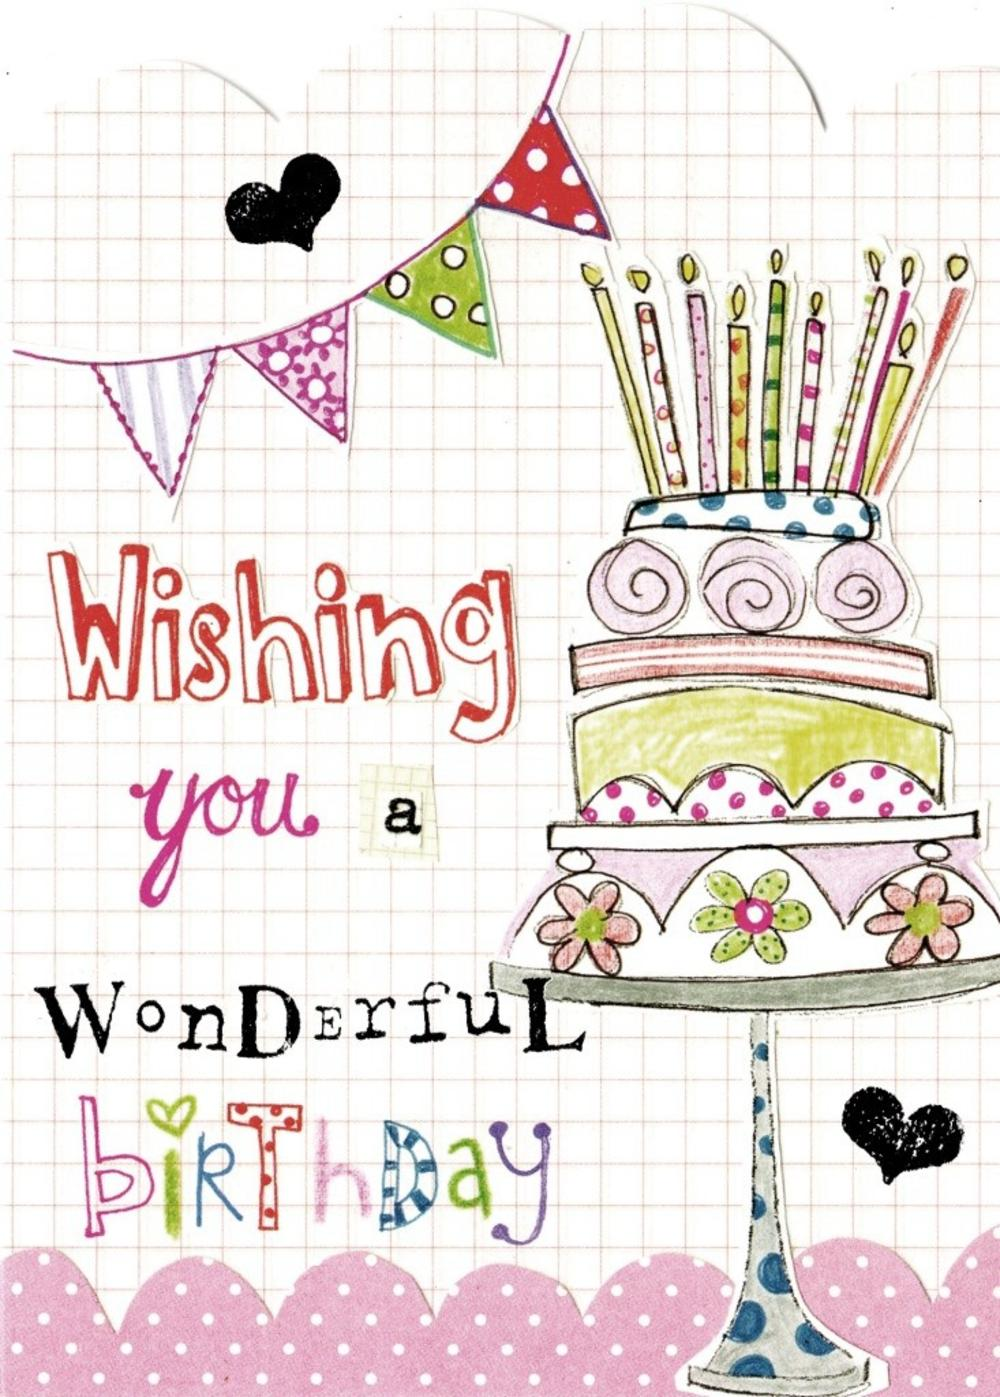 Wishing you a wonderful birthday paper salad birthday card cards wishing you a wonderful birthday paper salad birthday card bookmarktalkfo Image collections